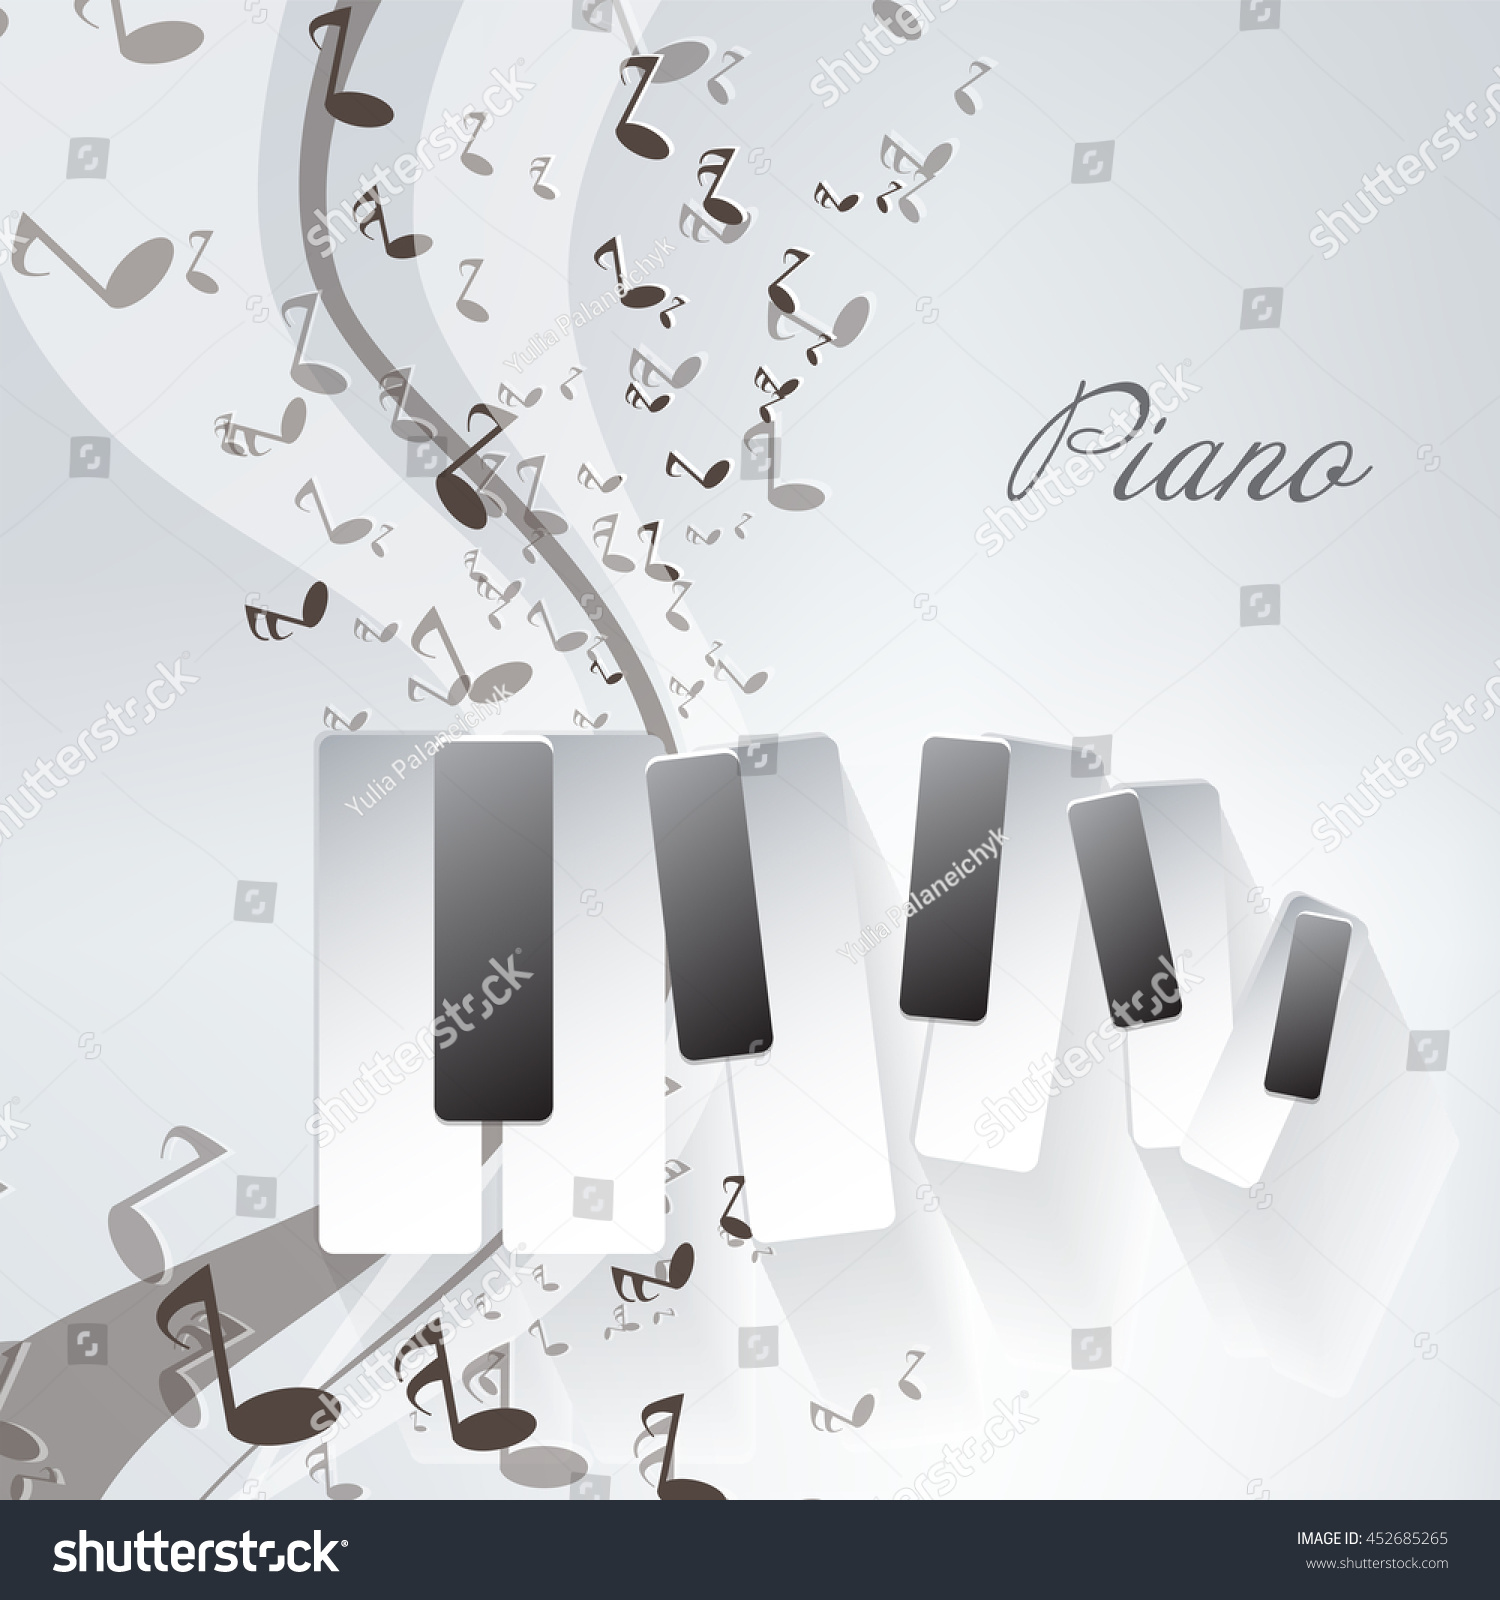 Piano Notes Background Stock Vector Royalty Free 452685265 Diagram With